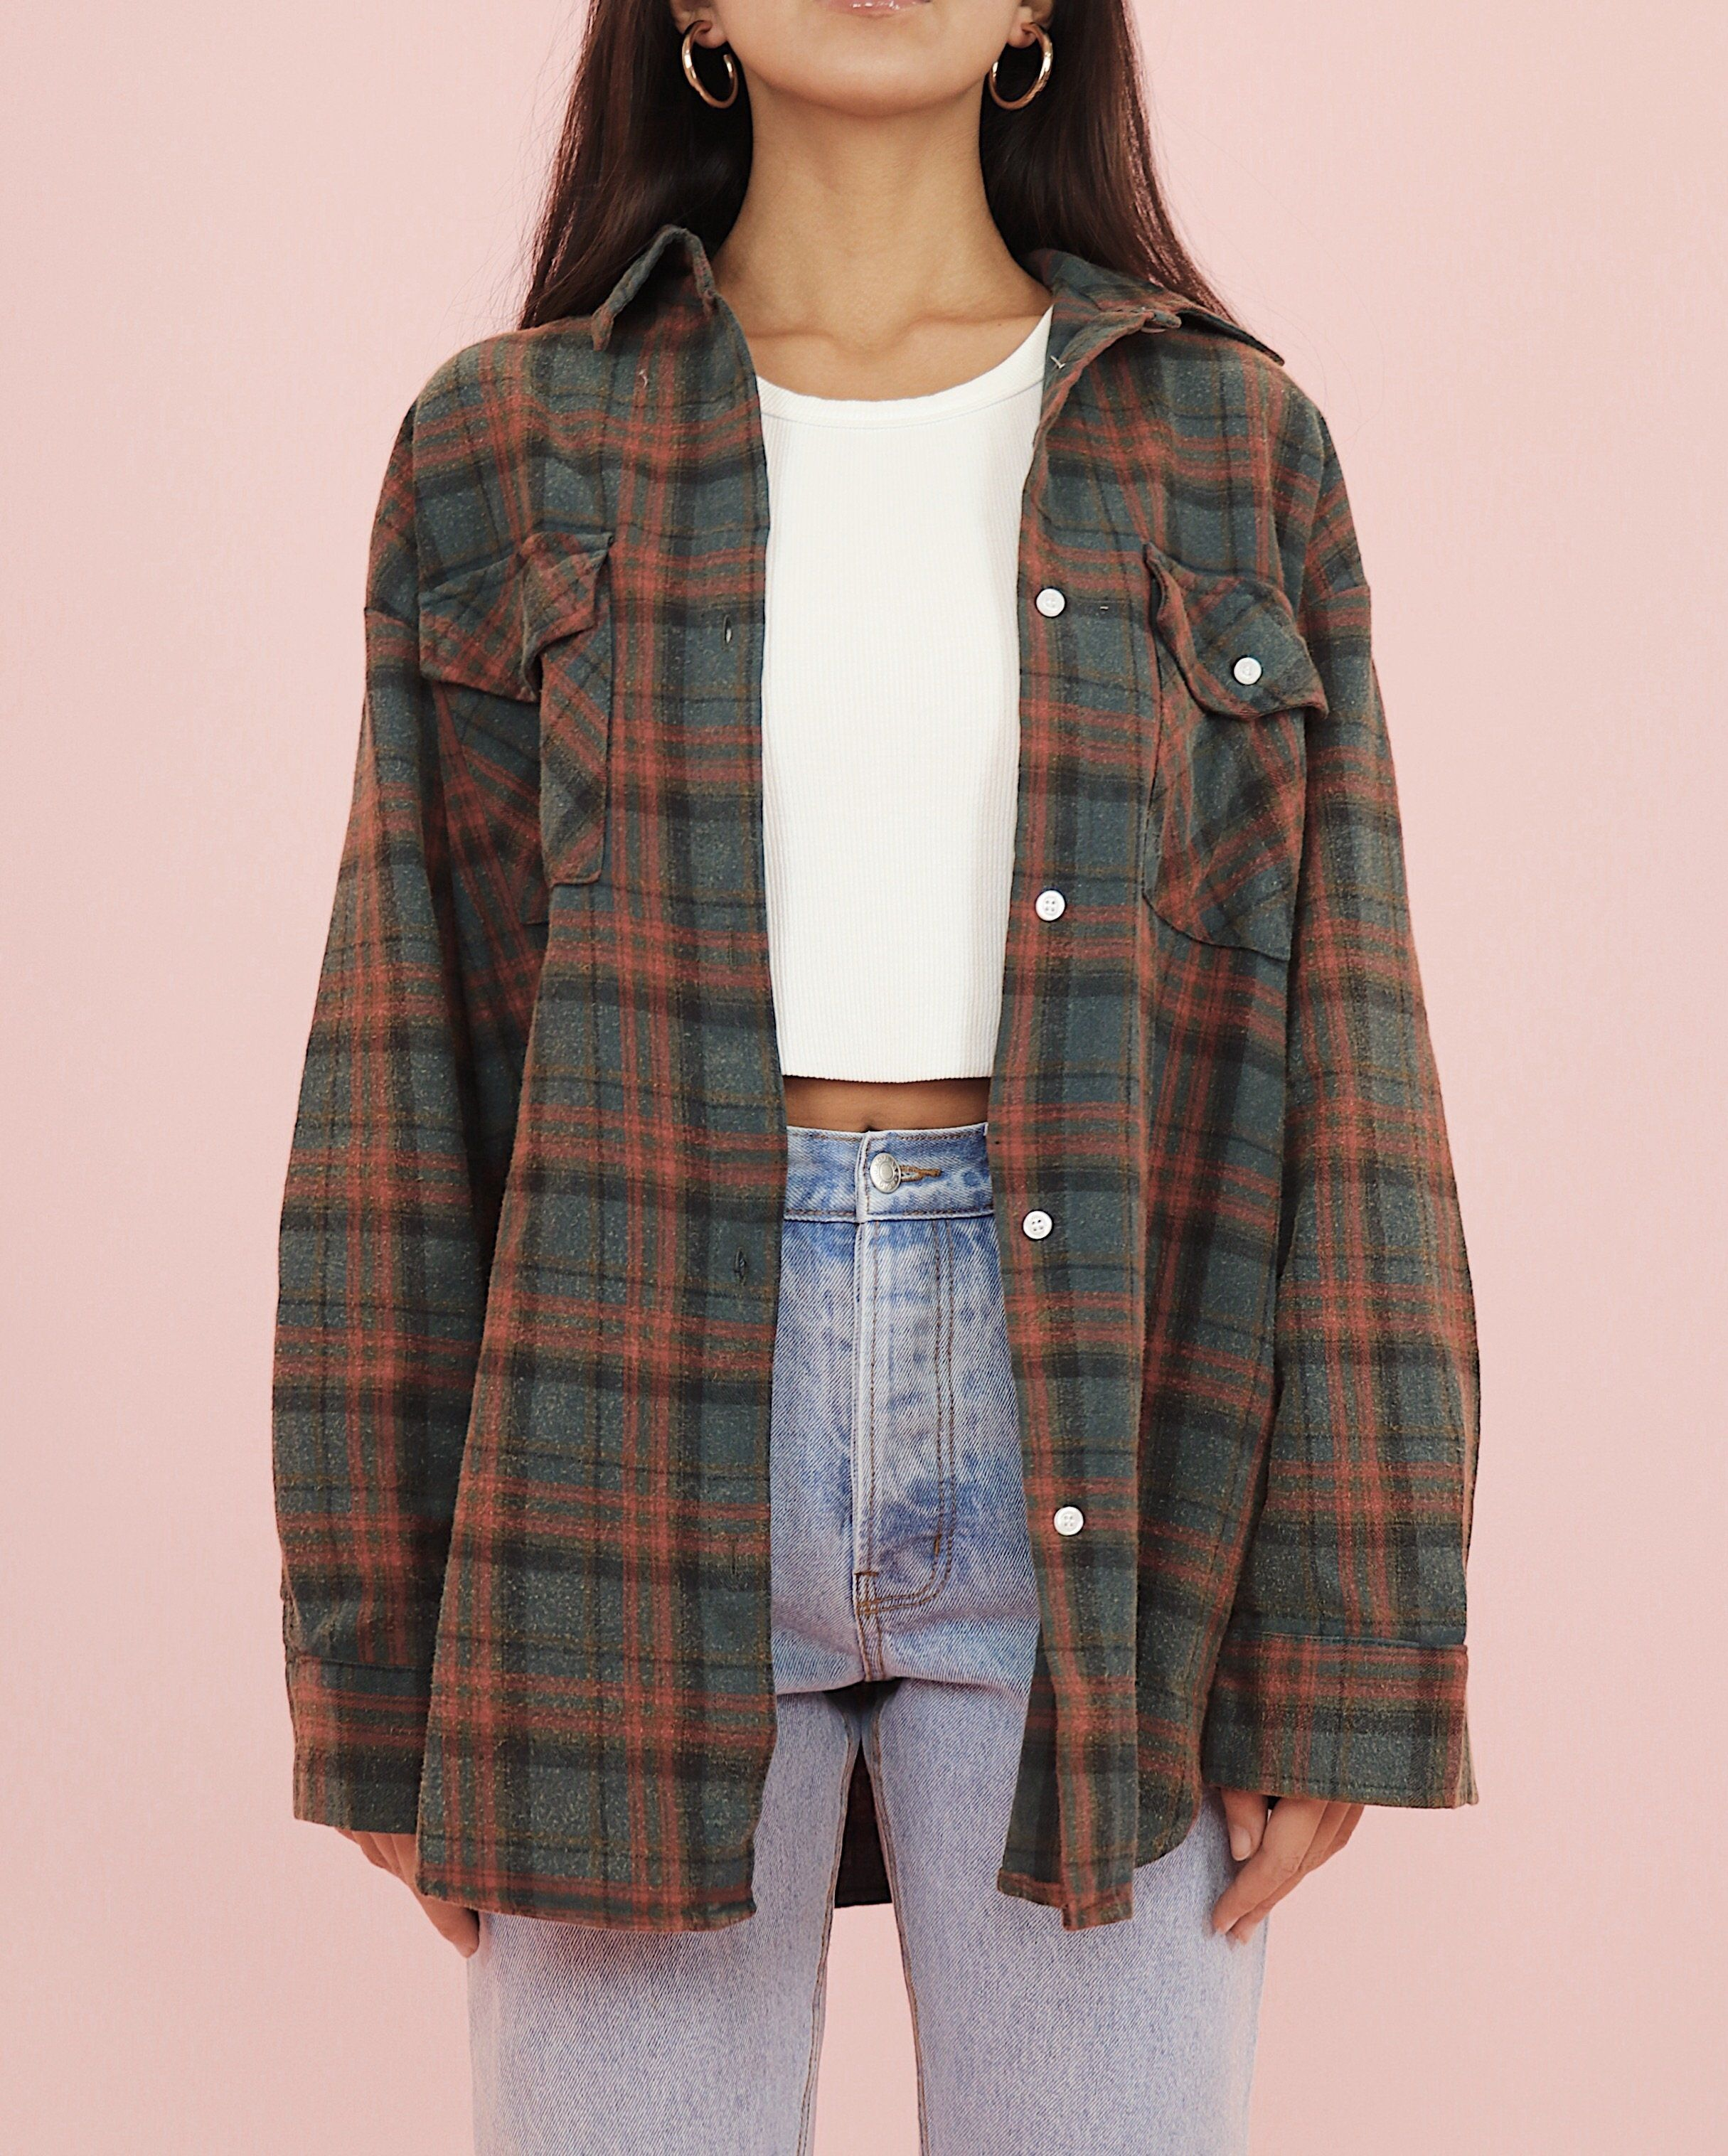 90s Flannel